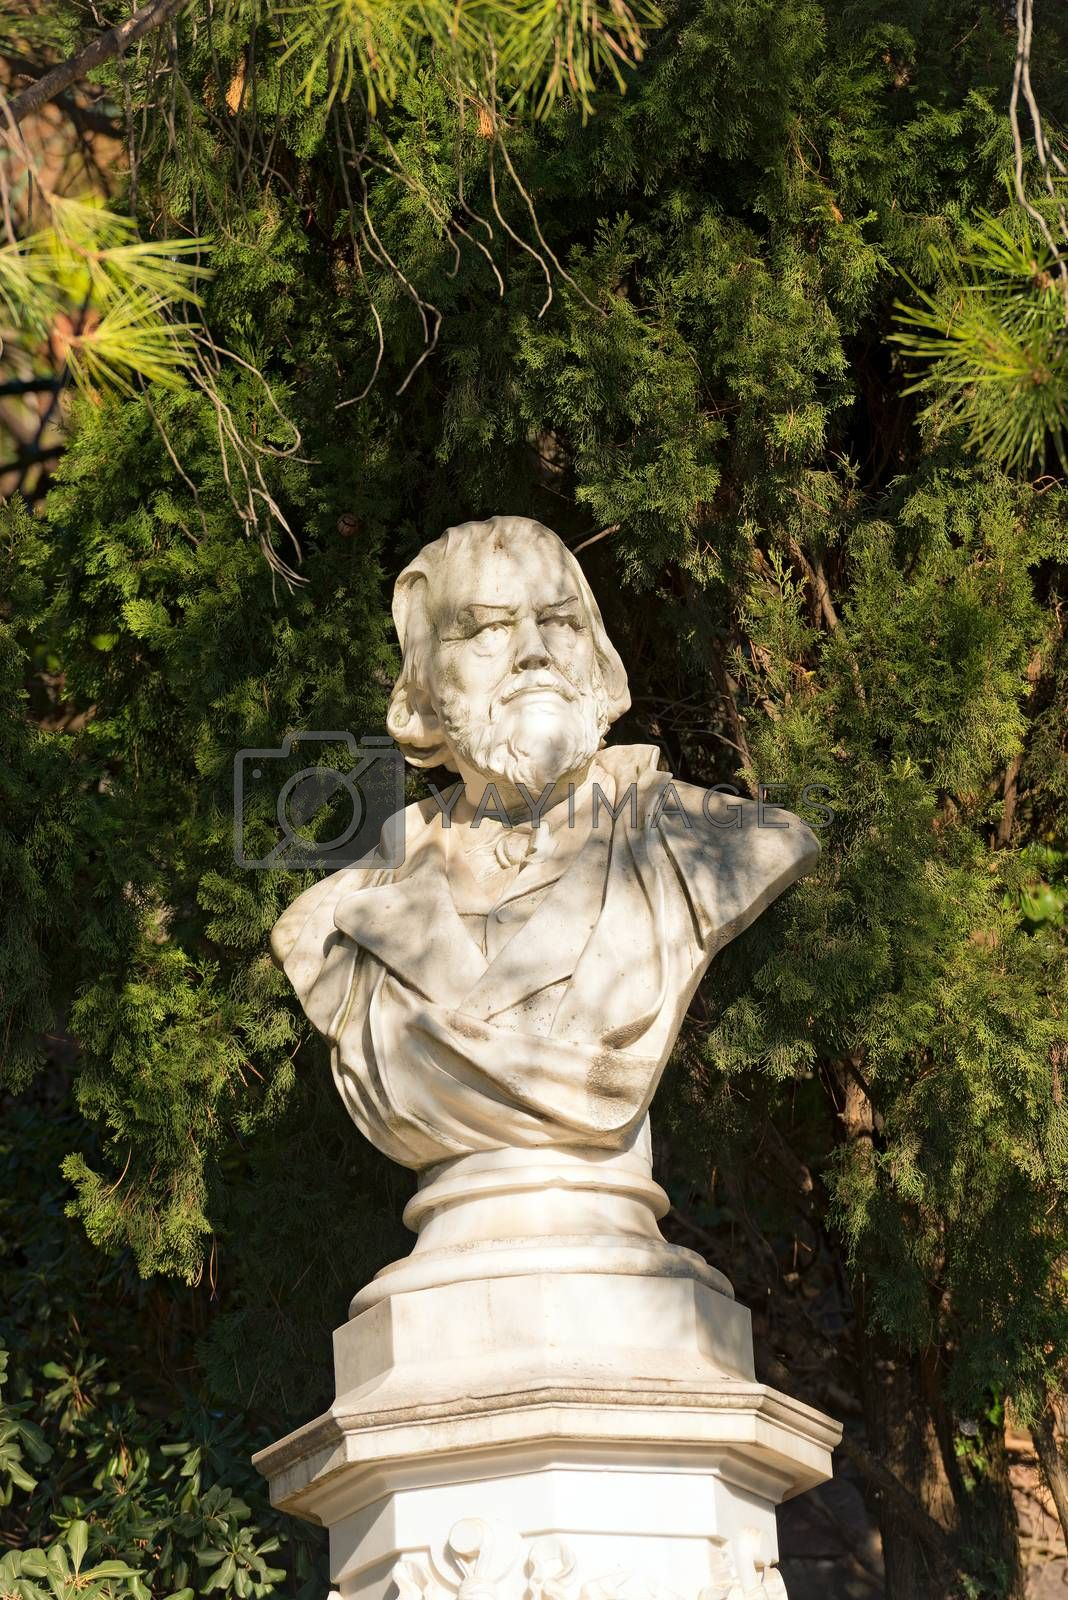 Detail of the marble bust of the Doctor Franz Tappeiner (1816-1902), botanist and anthropologist in Merano, Bolzano, Trentino Alto Adige, Italy